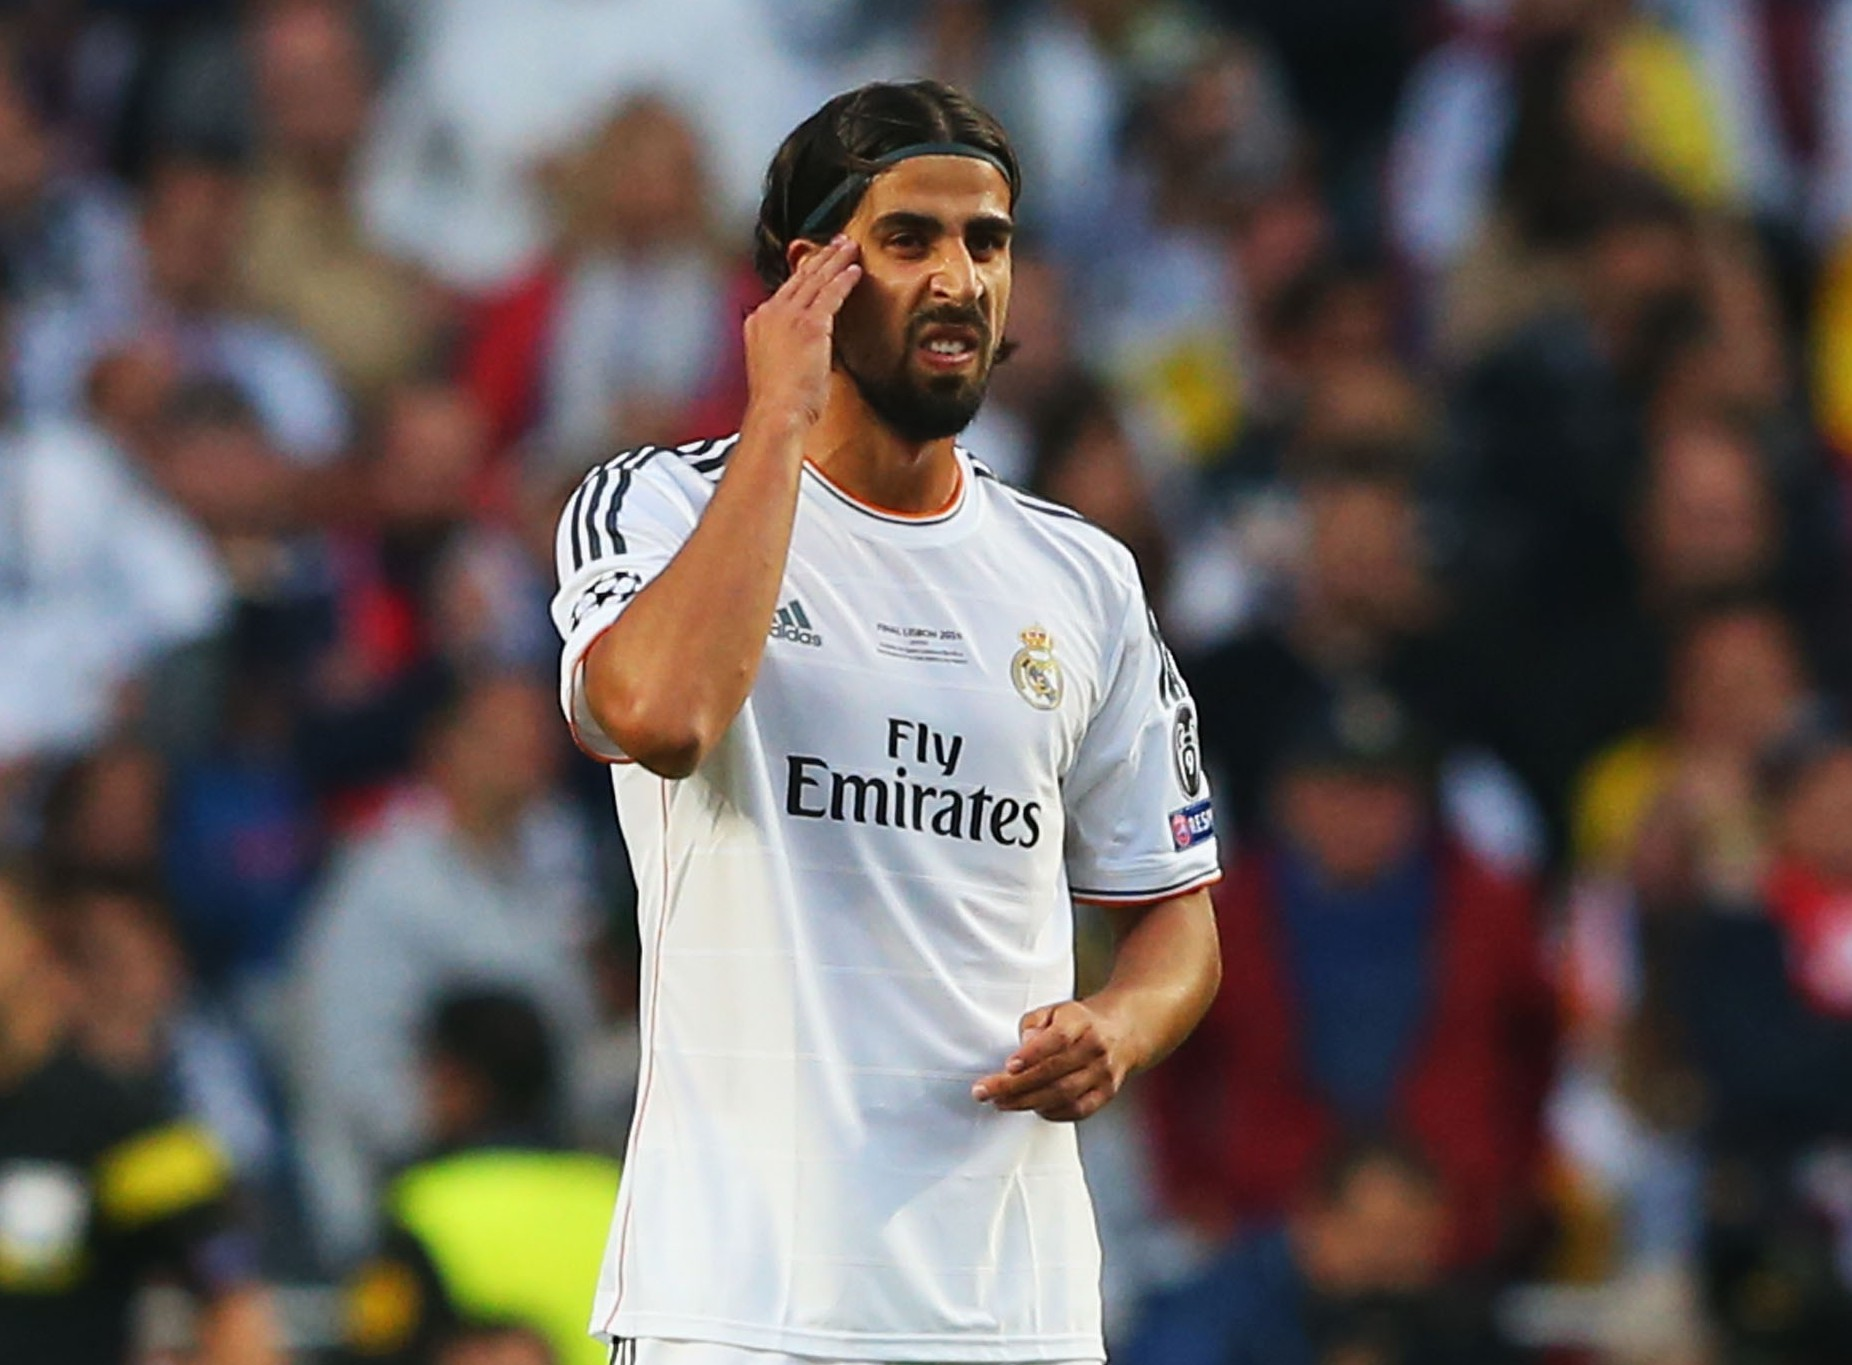 Arsenal could get cut price Sami Khedira transfer as Real Madrid force him out